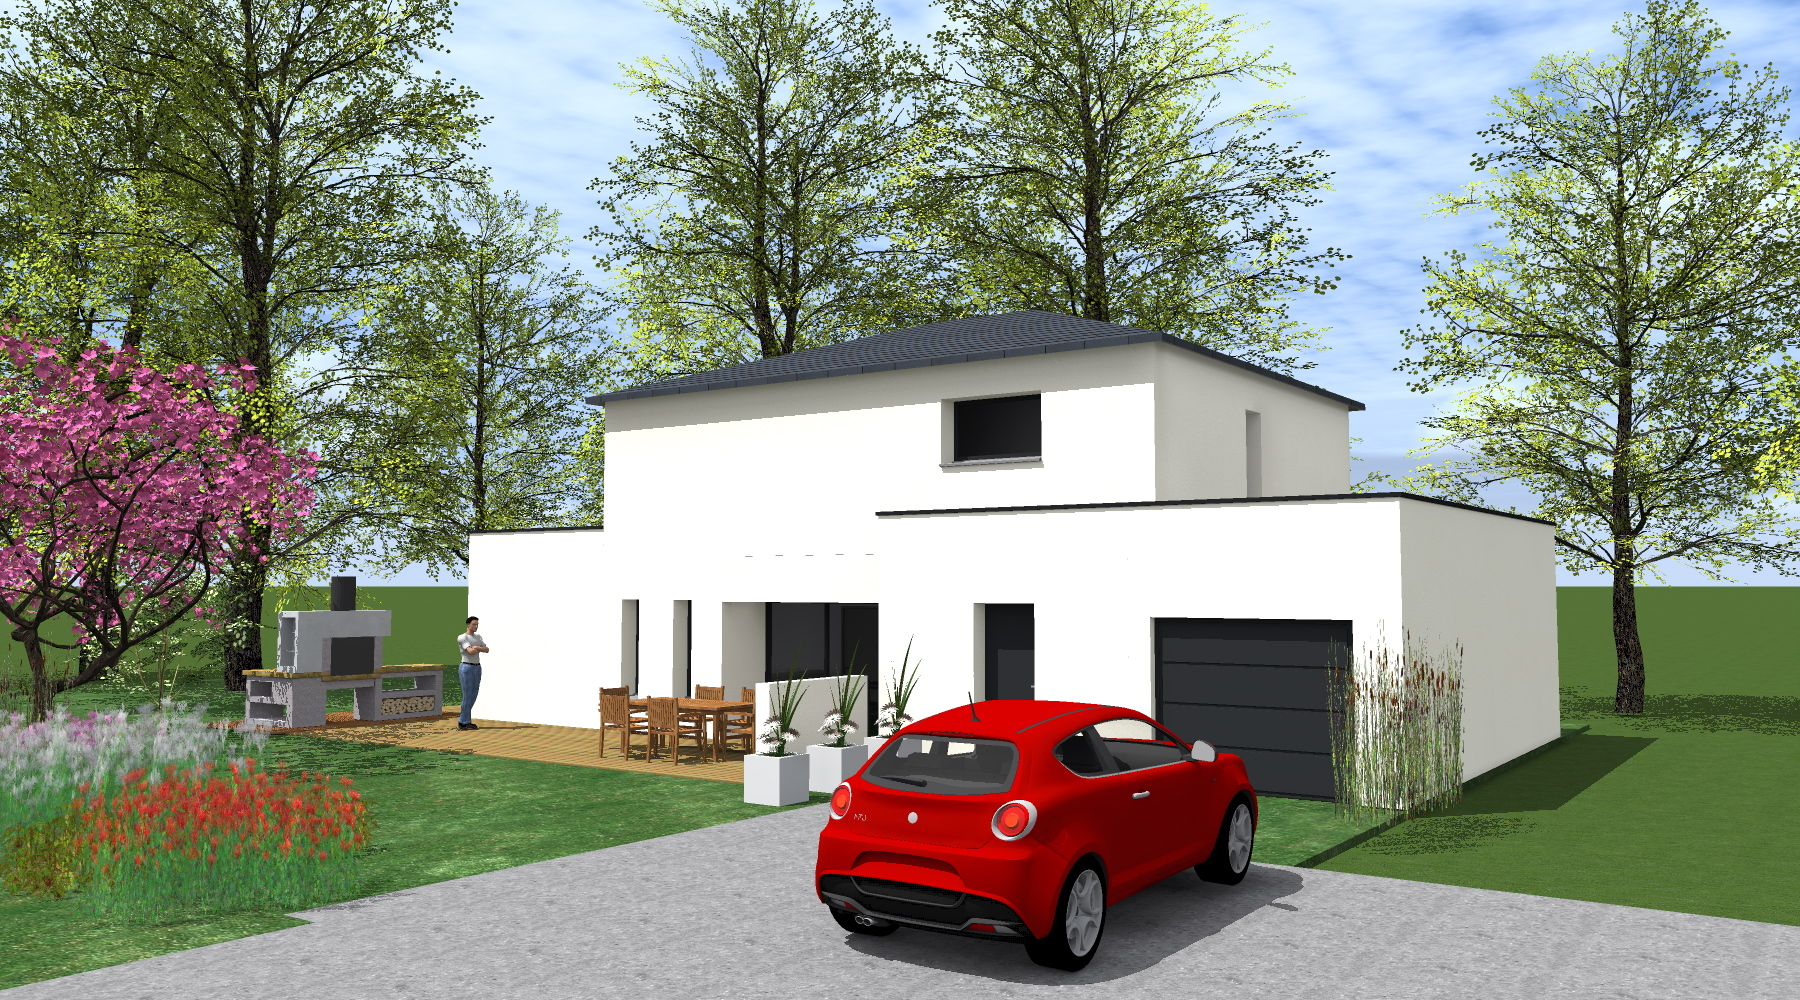 Etapes Construction Maison Rt 2012 Projet L 43a 1 2 Vue Architecte Lise Roturier Rennes